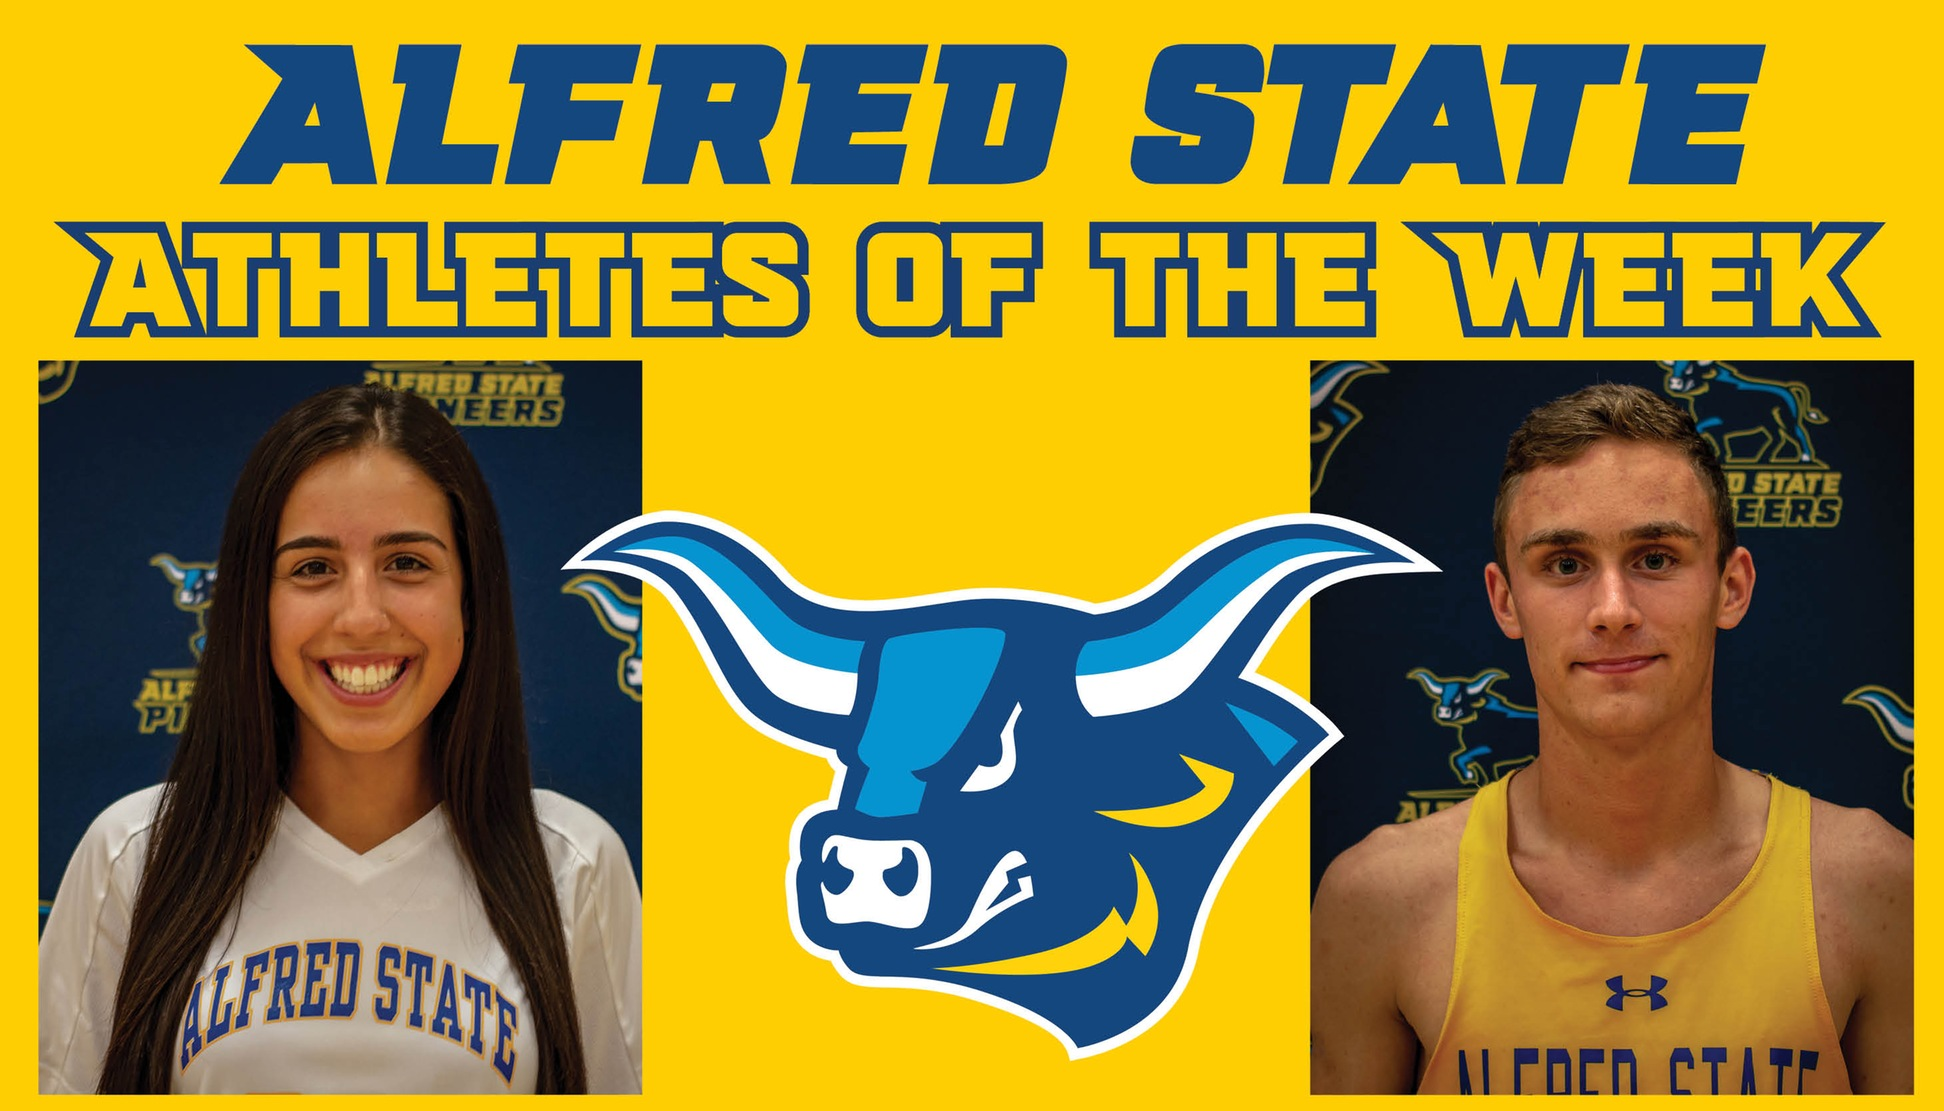 Athletes of the Week for 9/10 - Carissa Pompa & Ryan Lohr